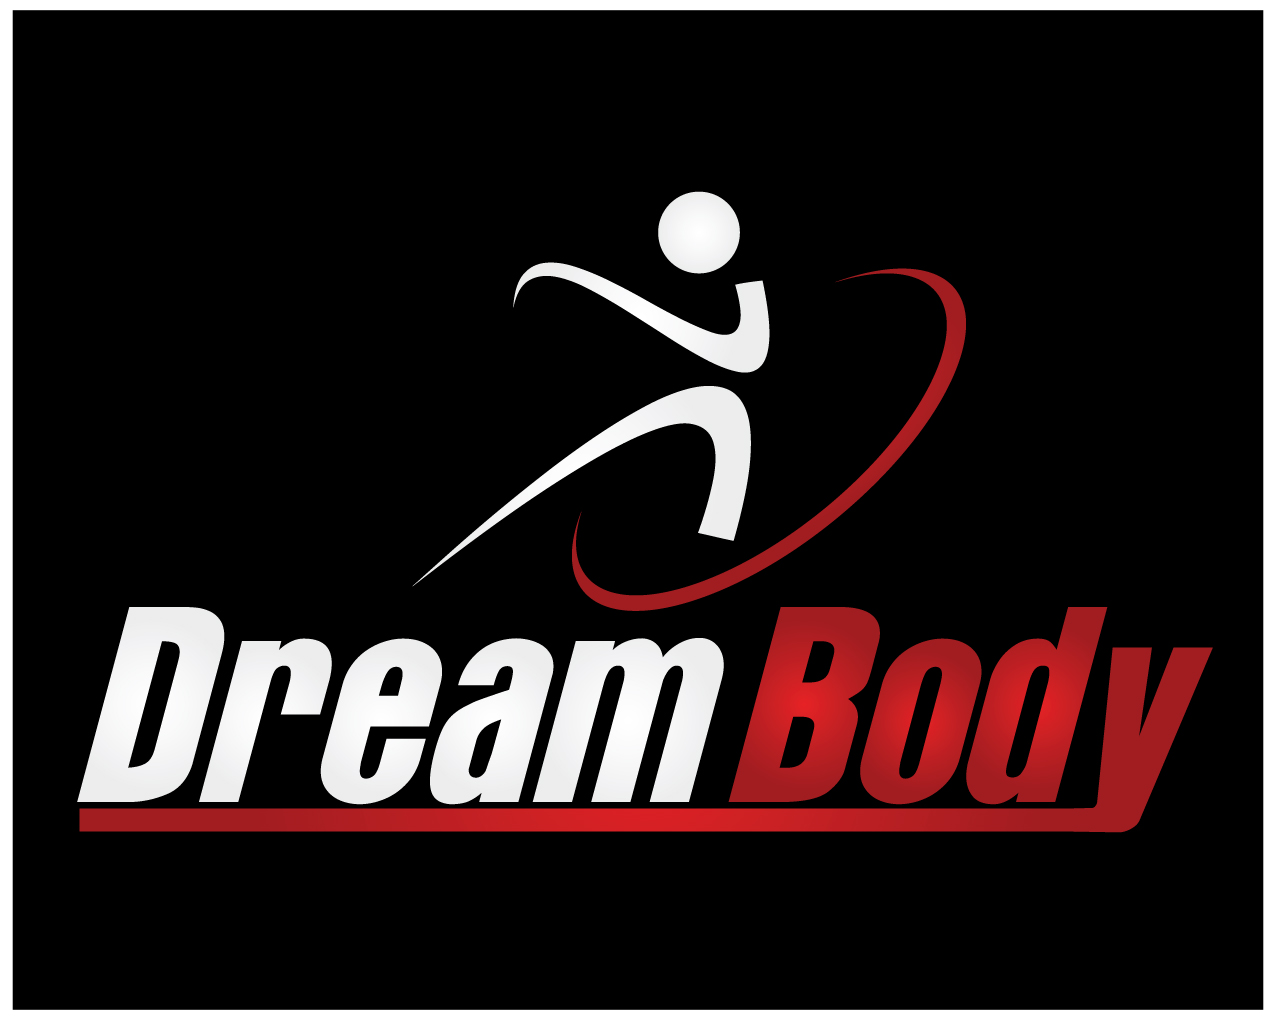 DreamBody, inc